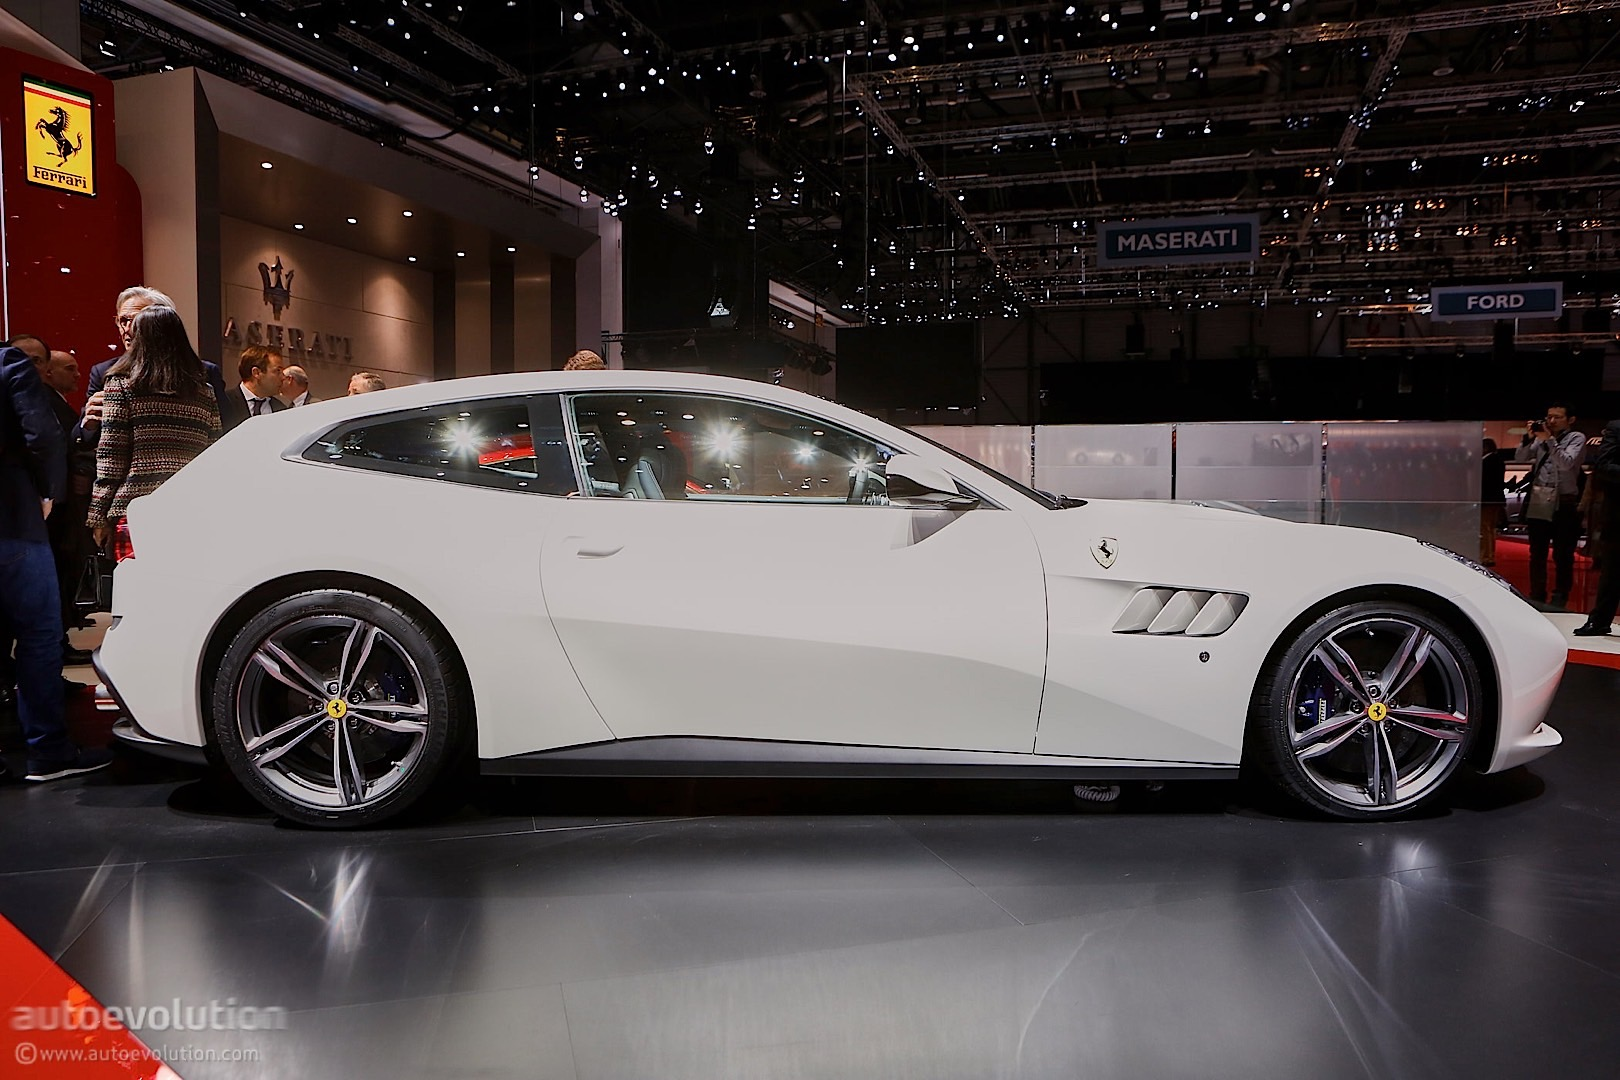 2016 Ferrari Gtc4lusso Is Dressed To Impress In Geneva